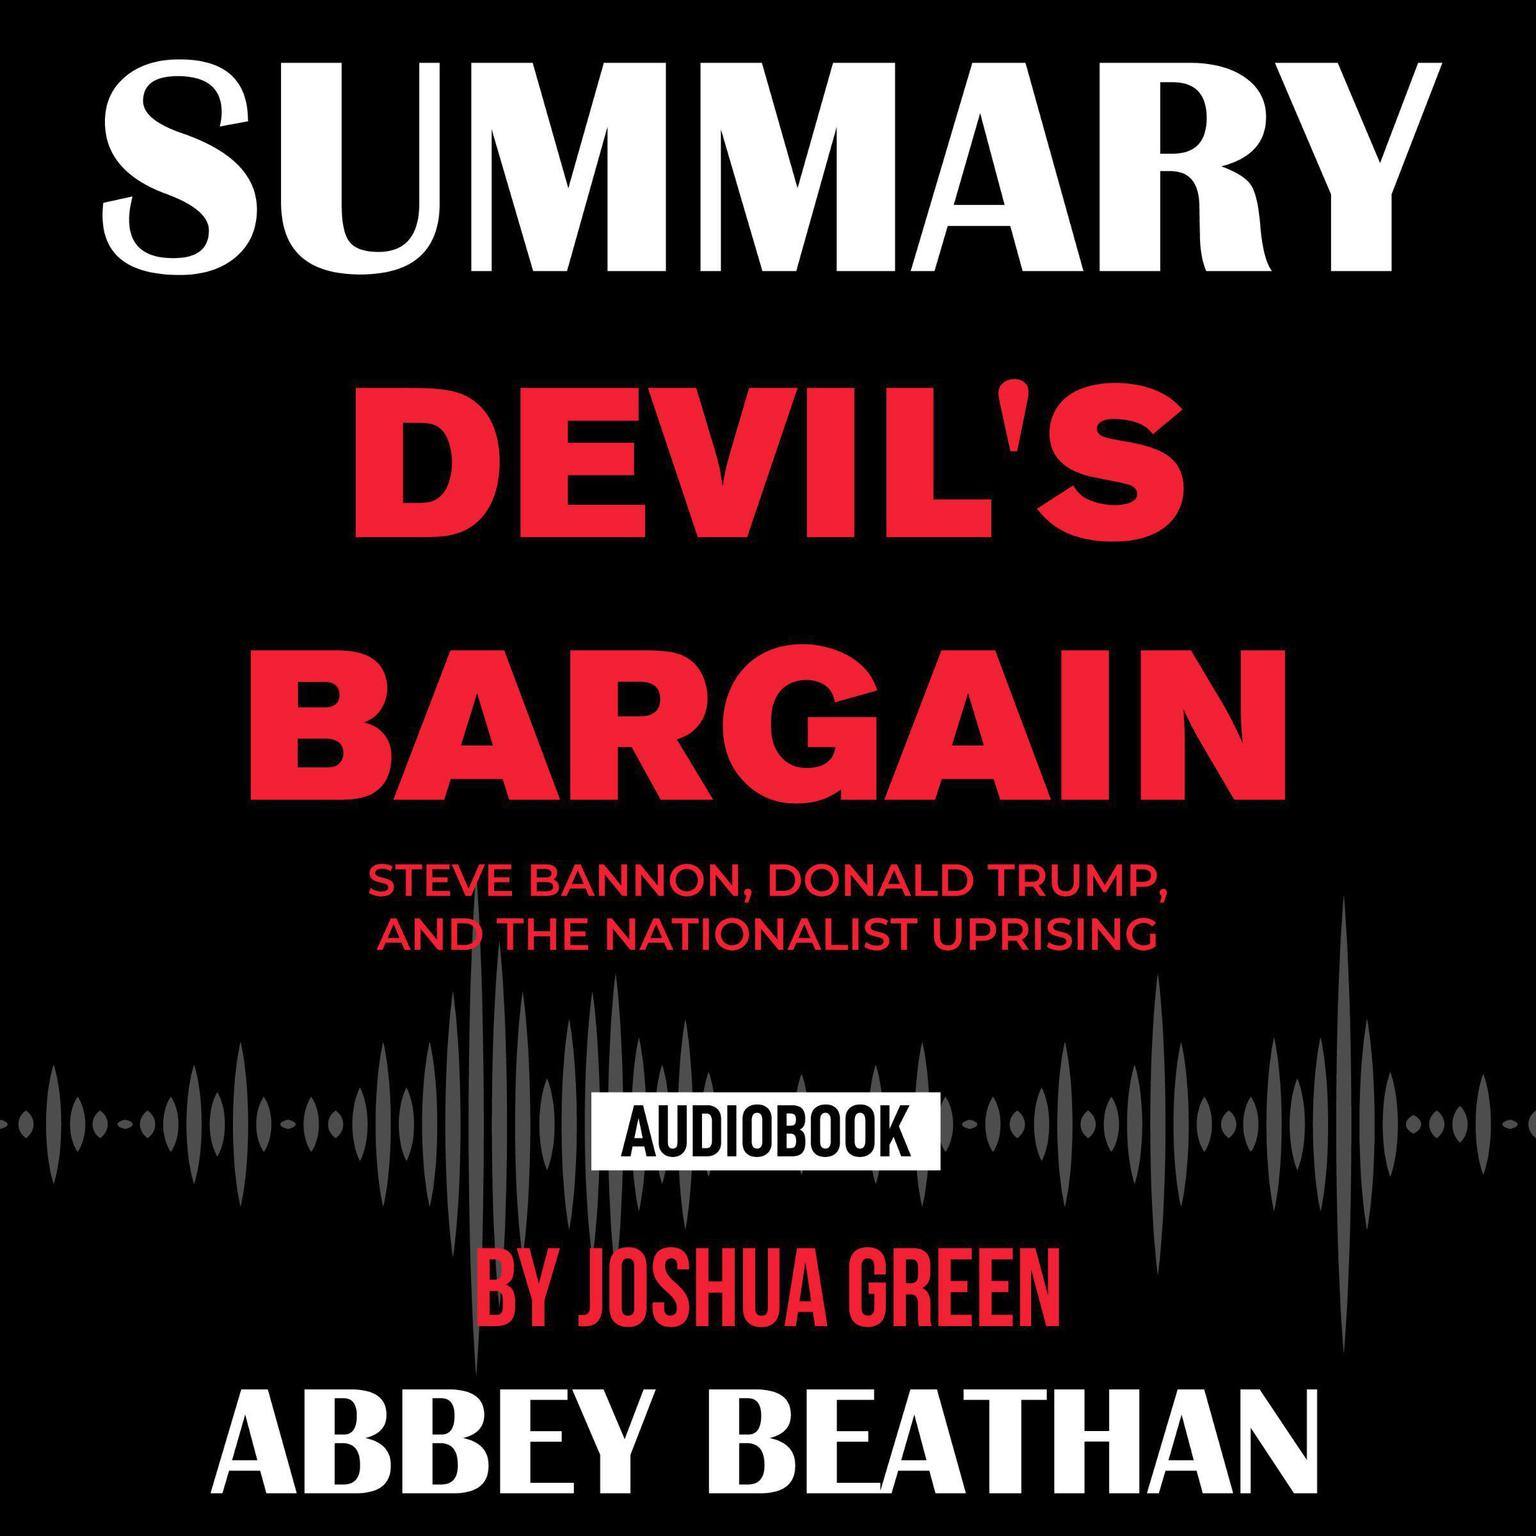 Summary of Devils Bargain: Steve Bannon, Donald Trump, and the Nationalist Uprising by Joshua Green Audiobook, by Abbey Beathan